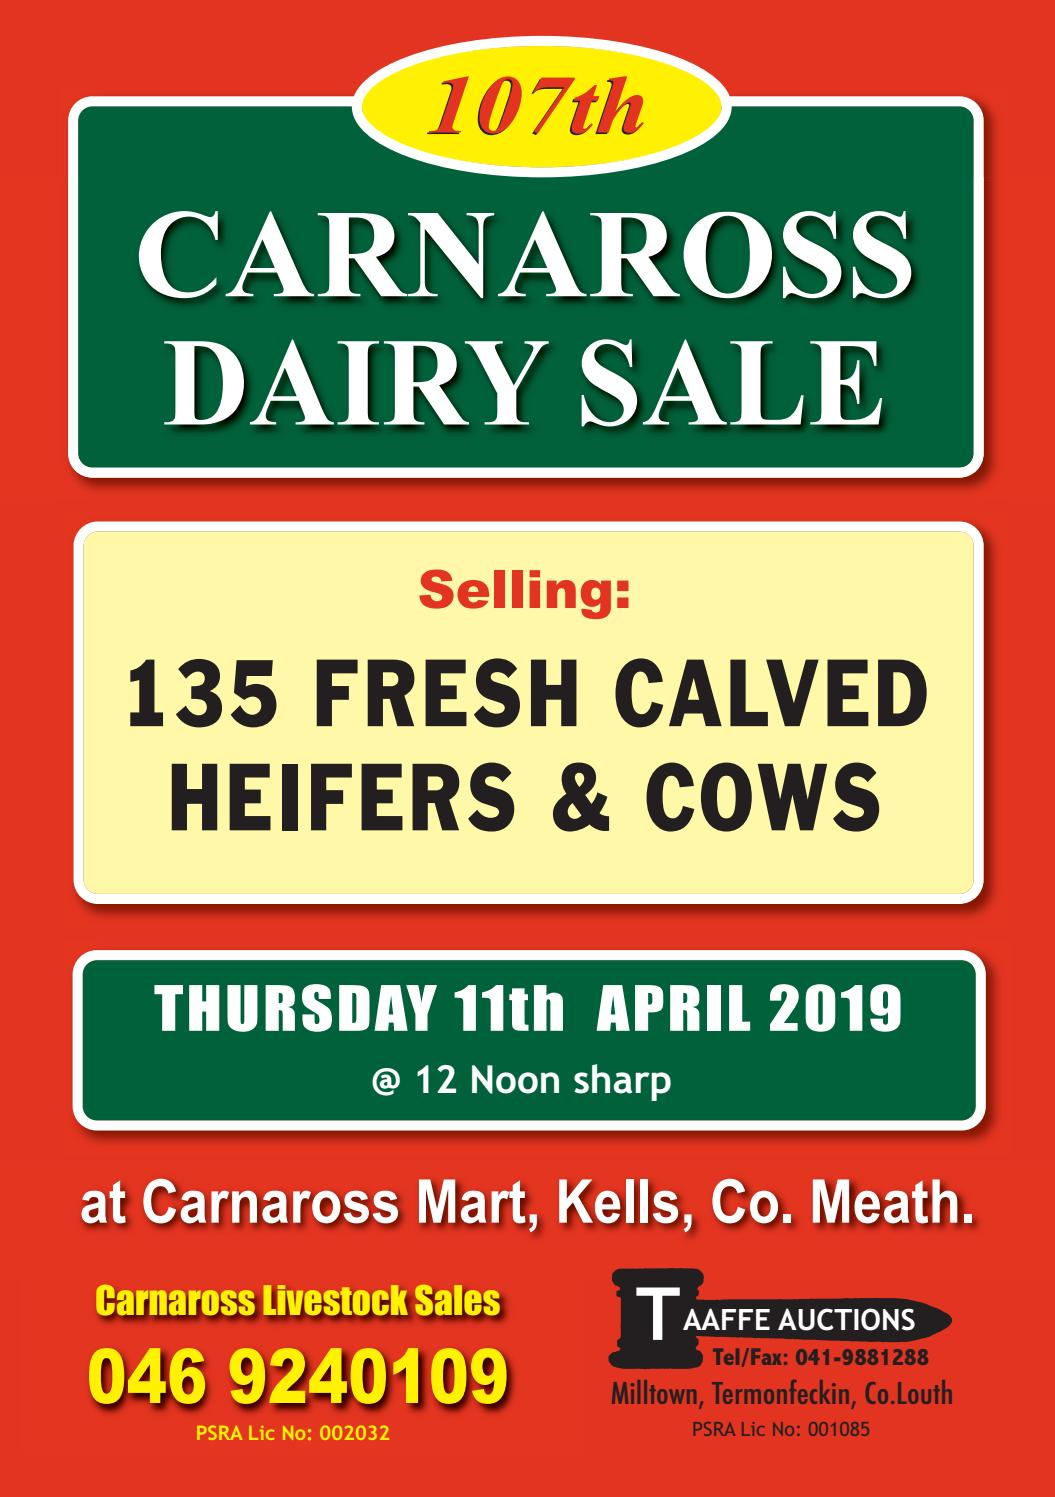 CARNAROSS DAIRY SALE 107 by TAAFFE AUCTIONS - issuu